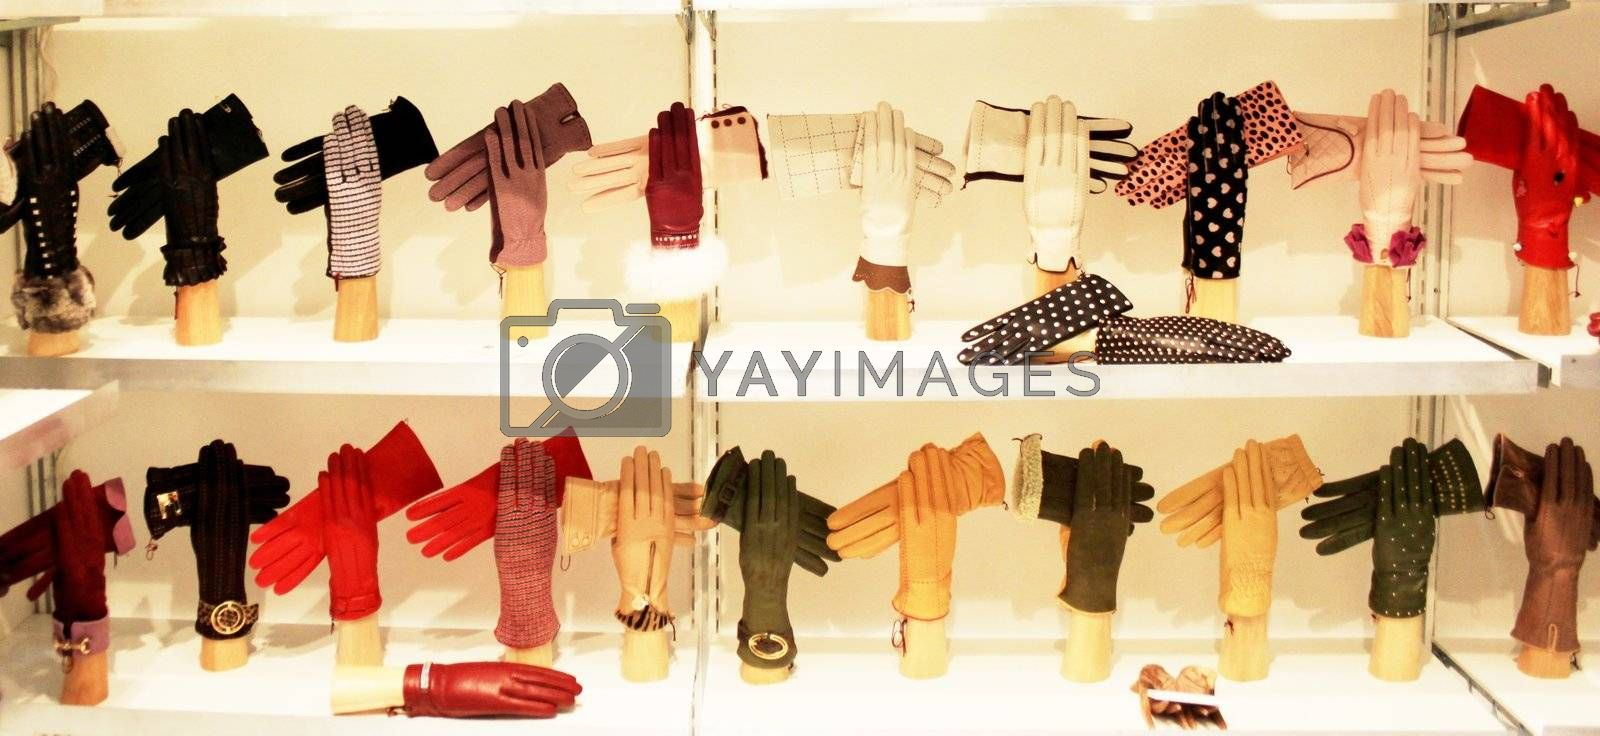 Made in Italy gloves exhibition during Milano women's prêt-à-porter fashion week 2010 in Milan, Italy.